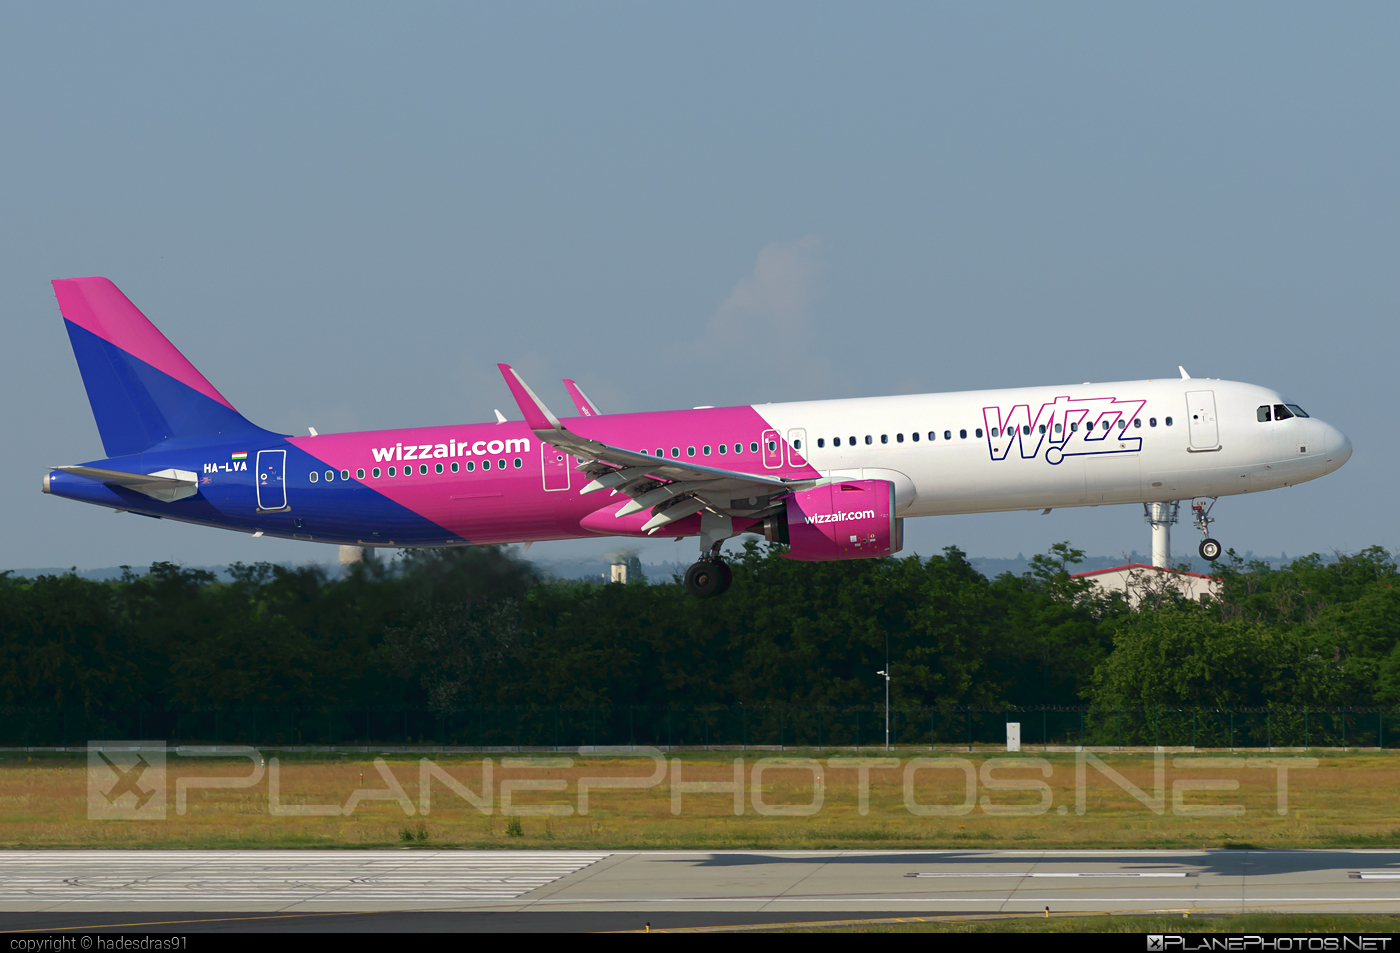 Airbus A321-271NX - HA-LVA operated by Wizz Air #a320family #a321 #a321neo #airbus #airbus321 #airbus321lr #wizz #wizzair